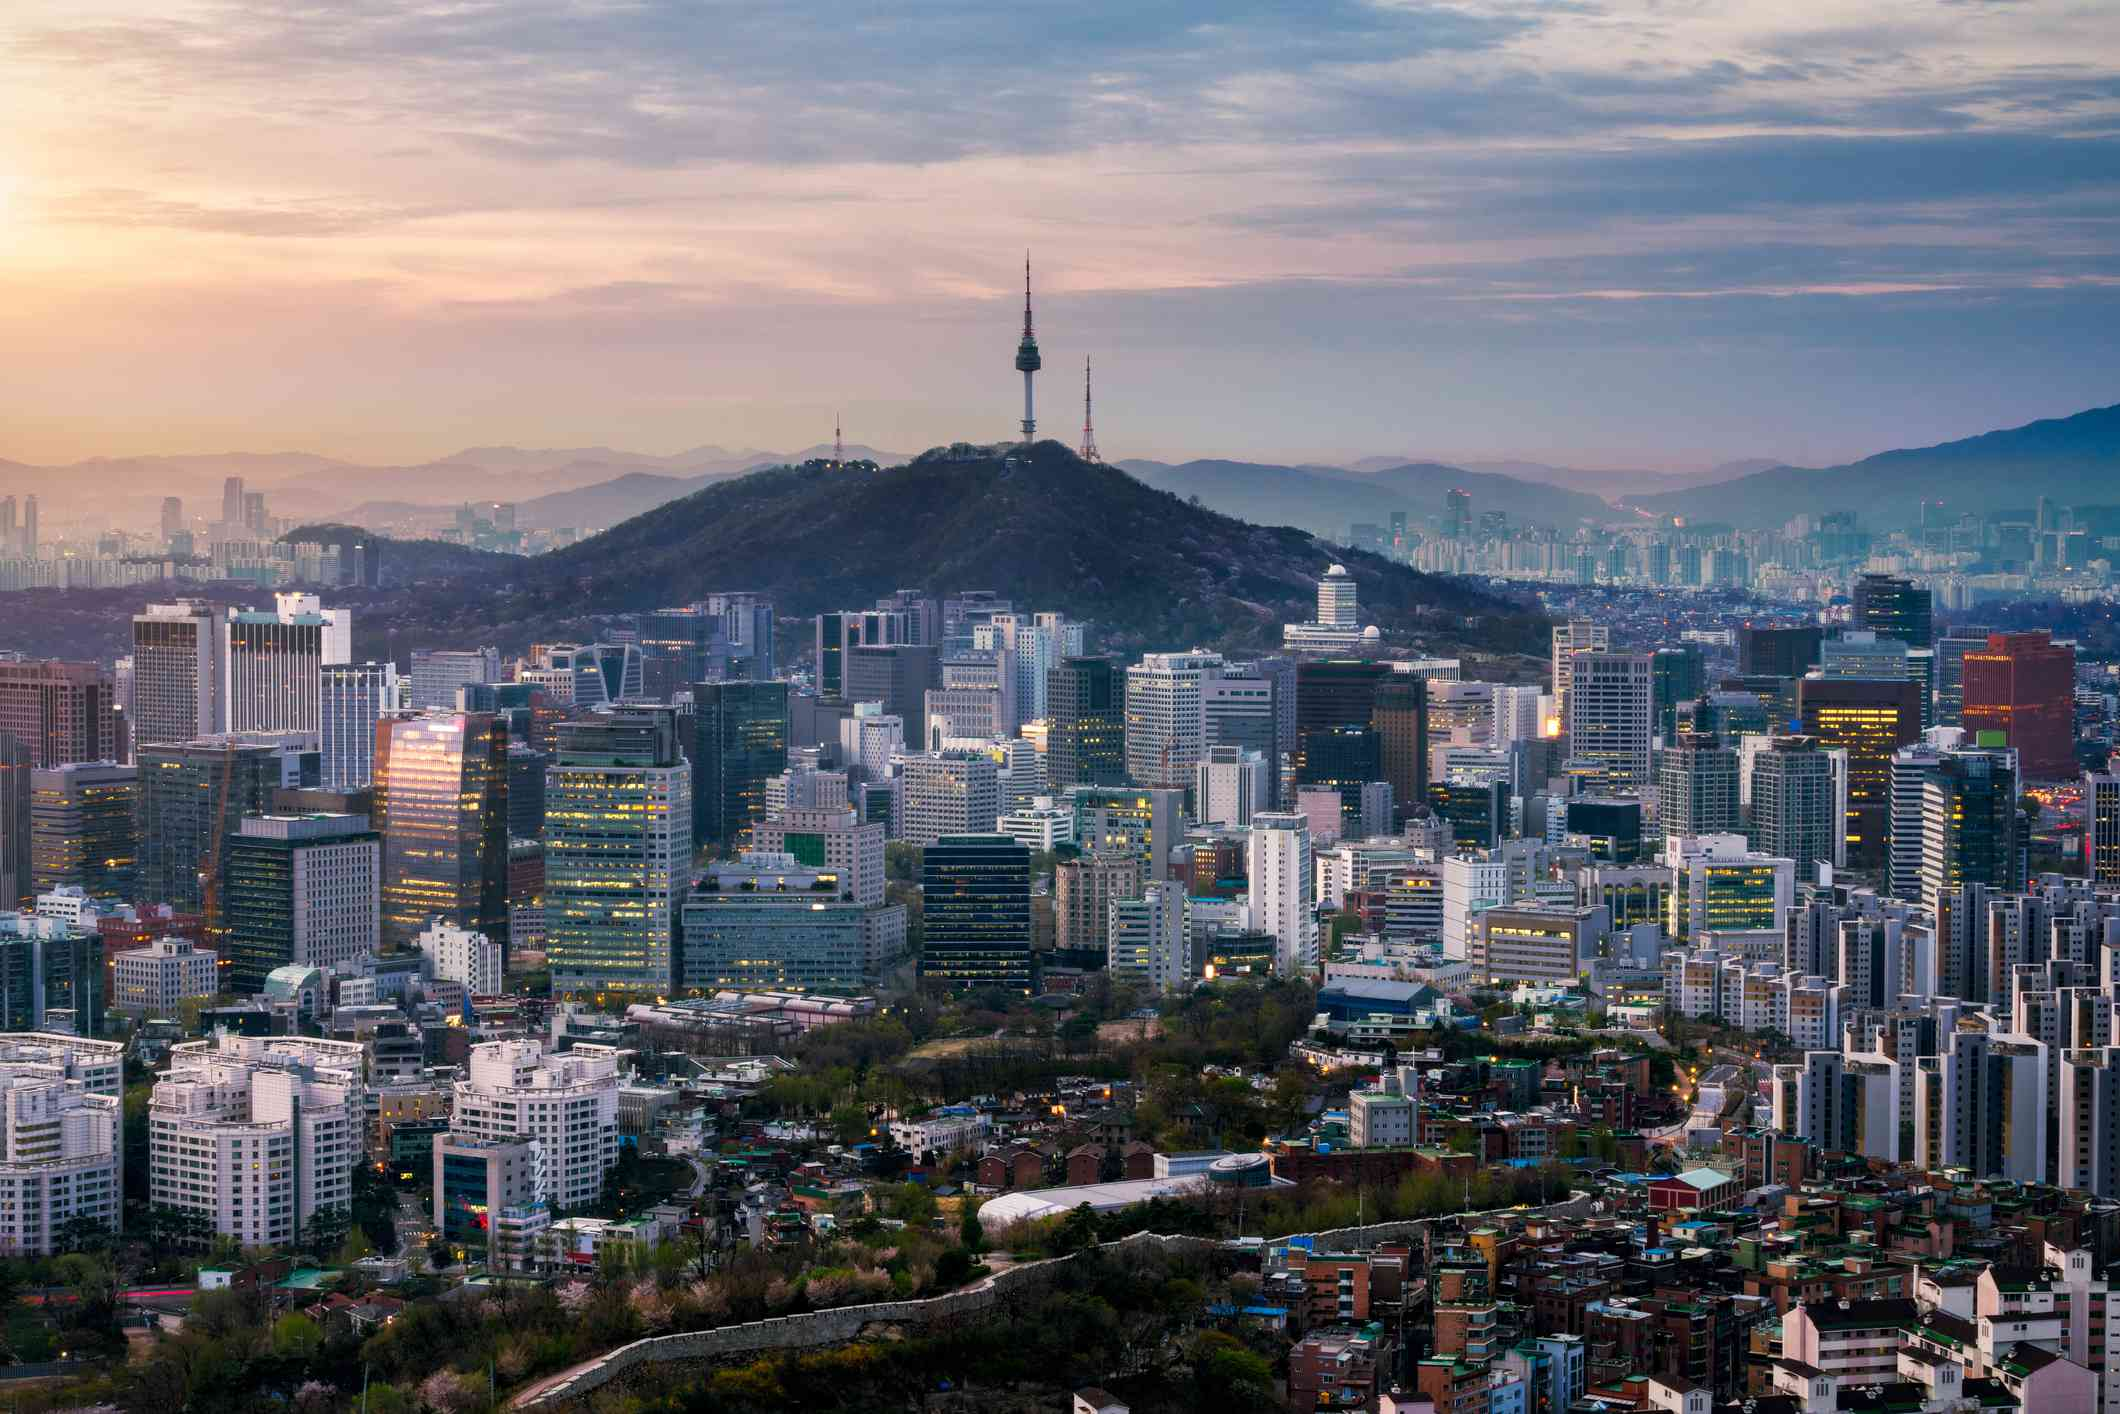 aerial view of sunrise over Seoul downtown city skyline, with Seoul Tower at Namsan Park atop Namsan Mountain